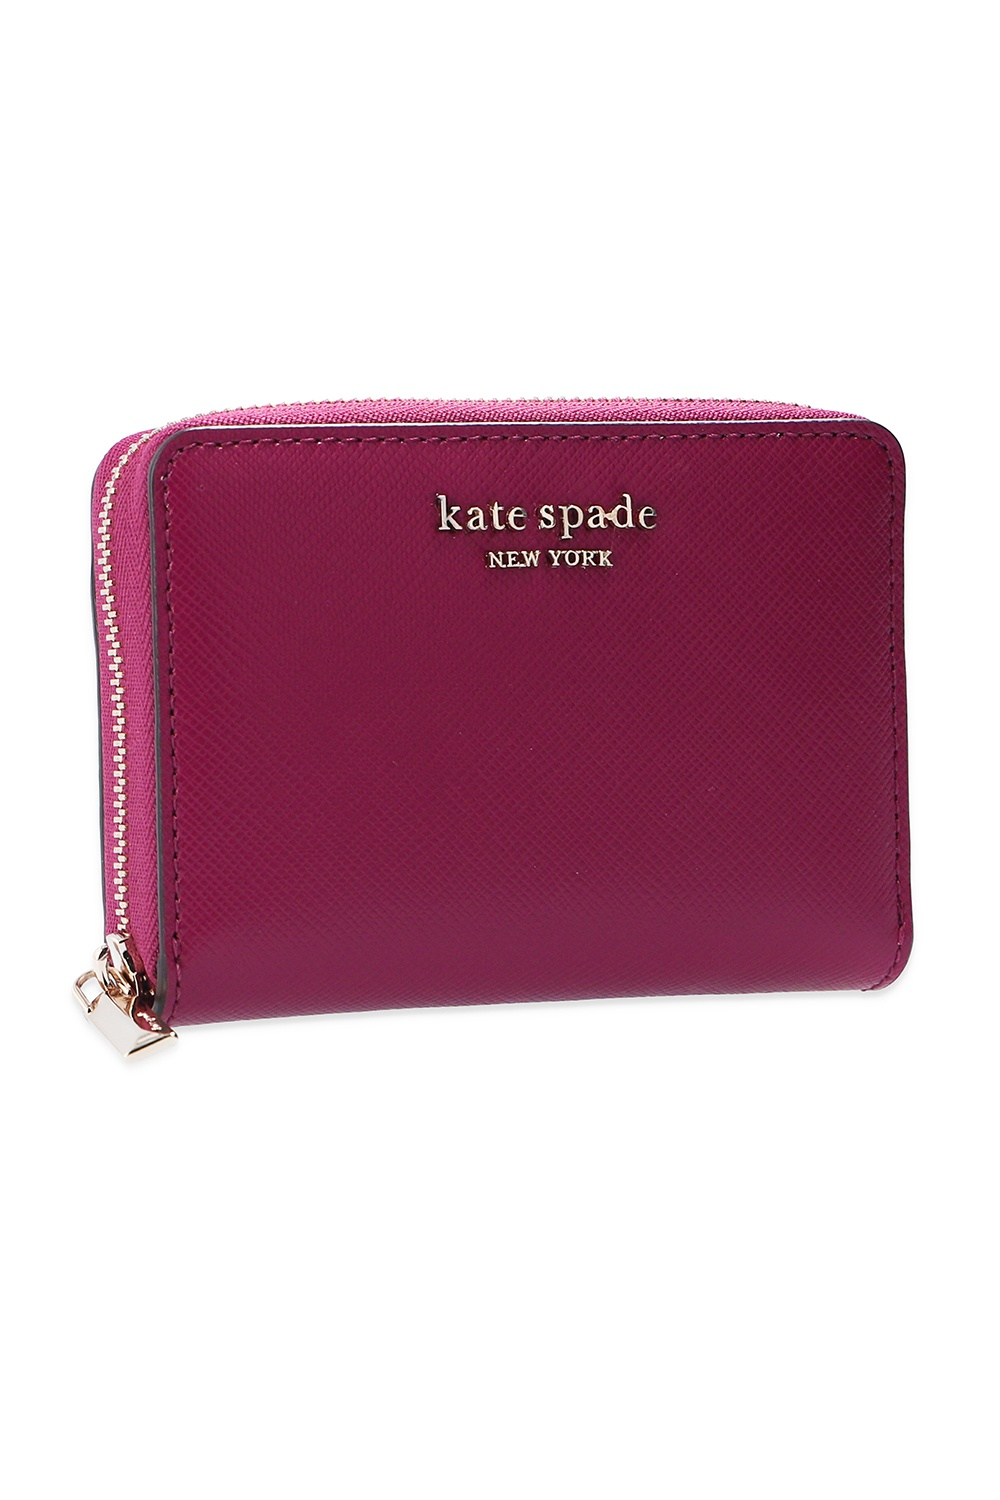 Kate Spade Wallet with logo